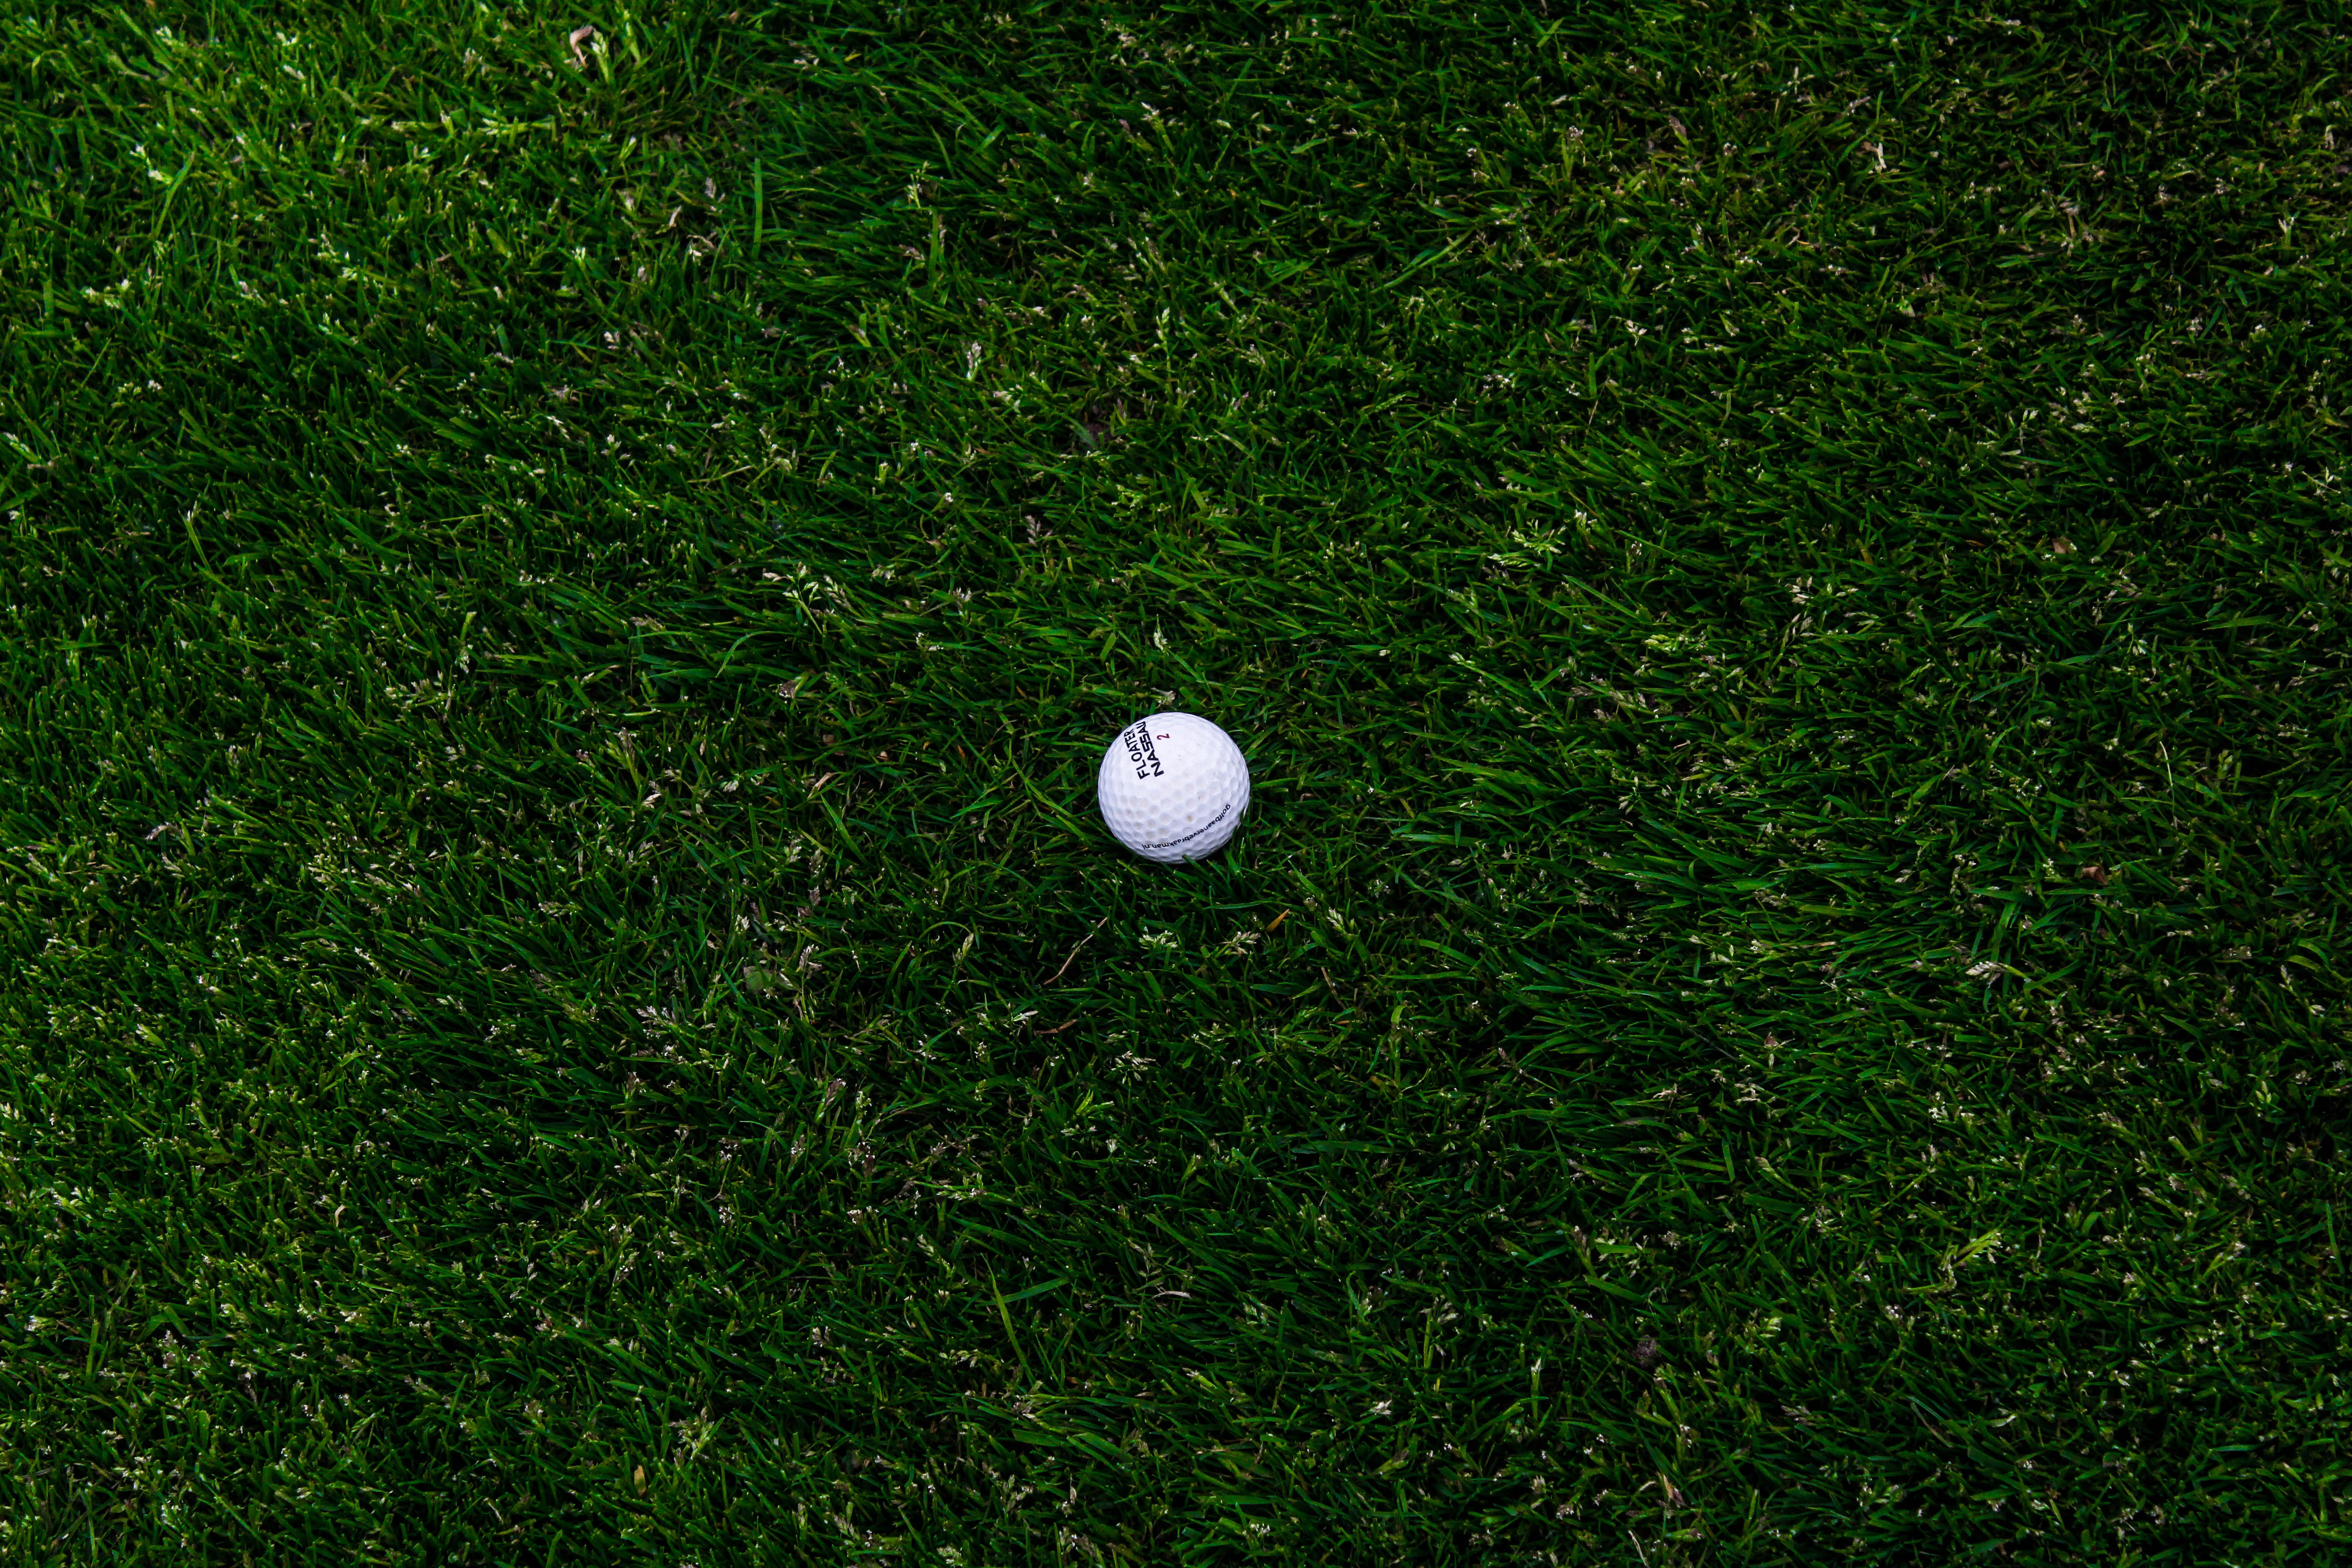 142790 download wallpaper Grass, Golf, Minimalism, Ball, Lawn screensavers and pictures for free